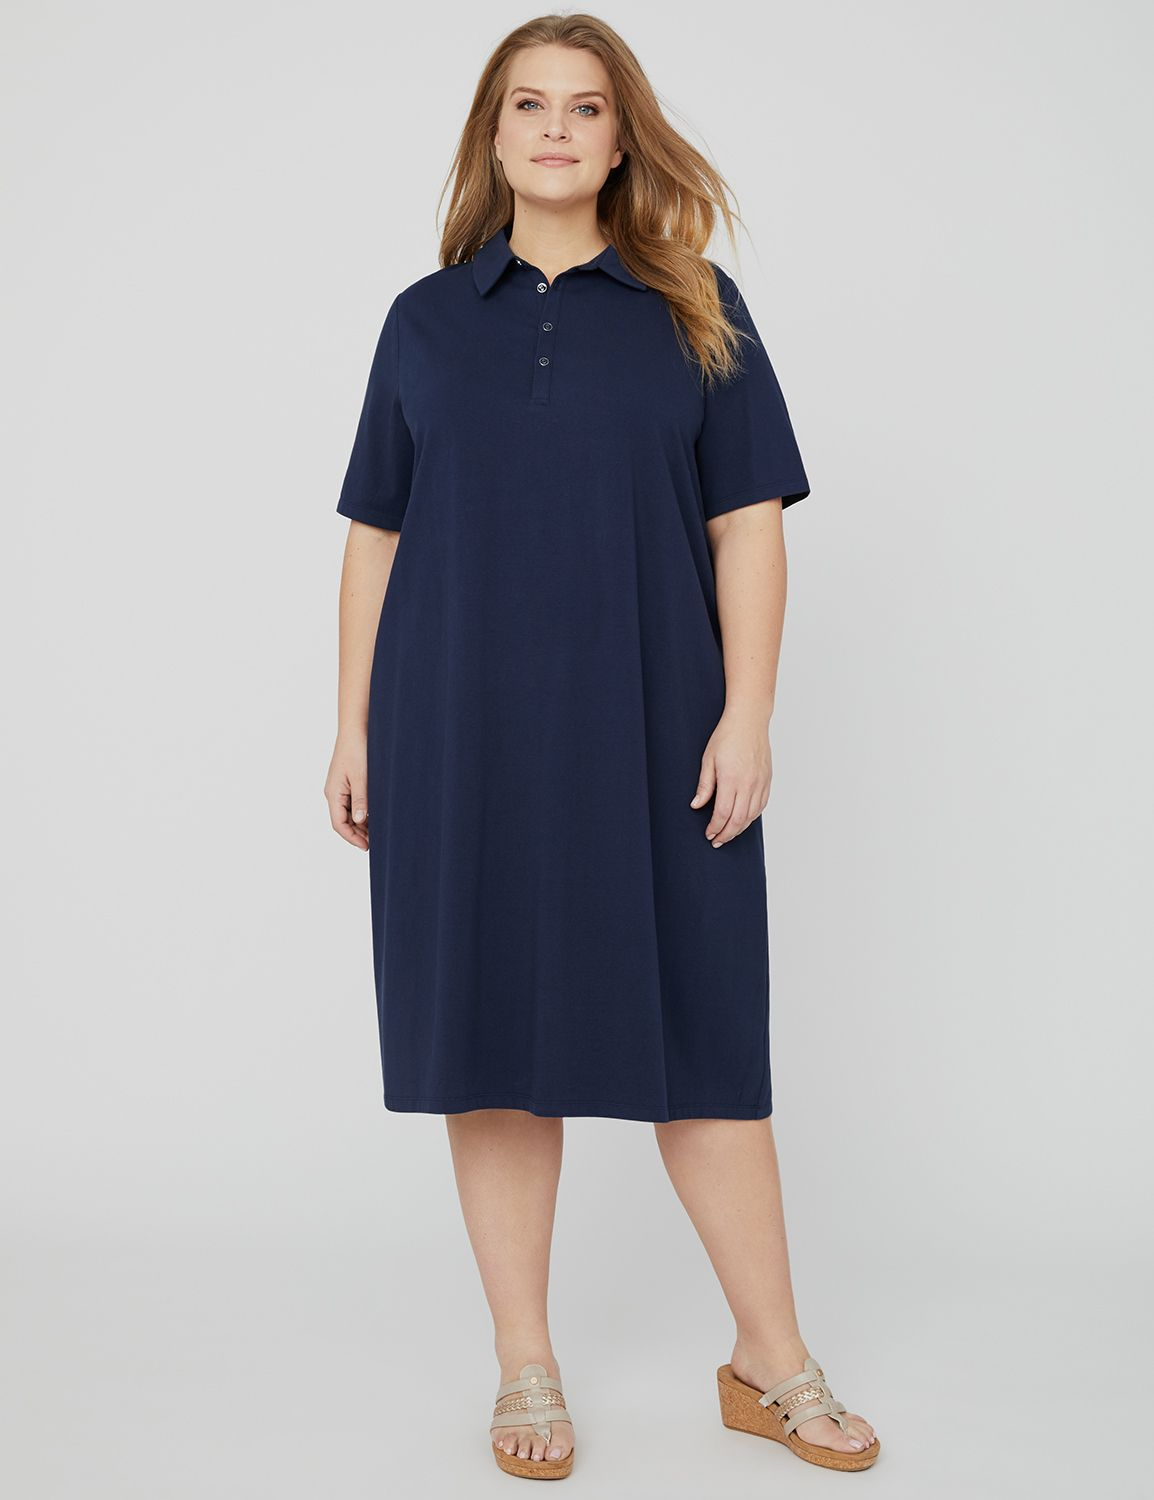 Suprema Polo Dress 1090899 Suprema Polo Dress MP-300105760